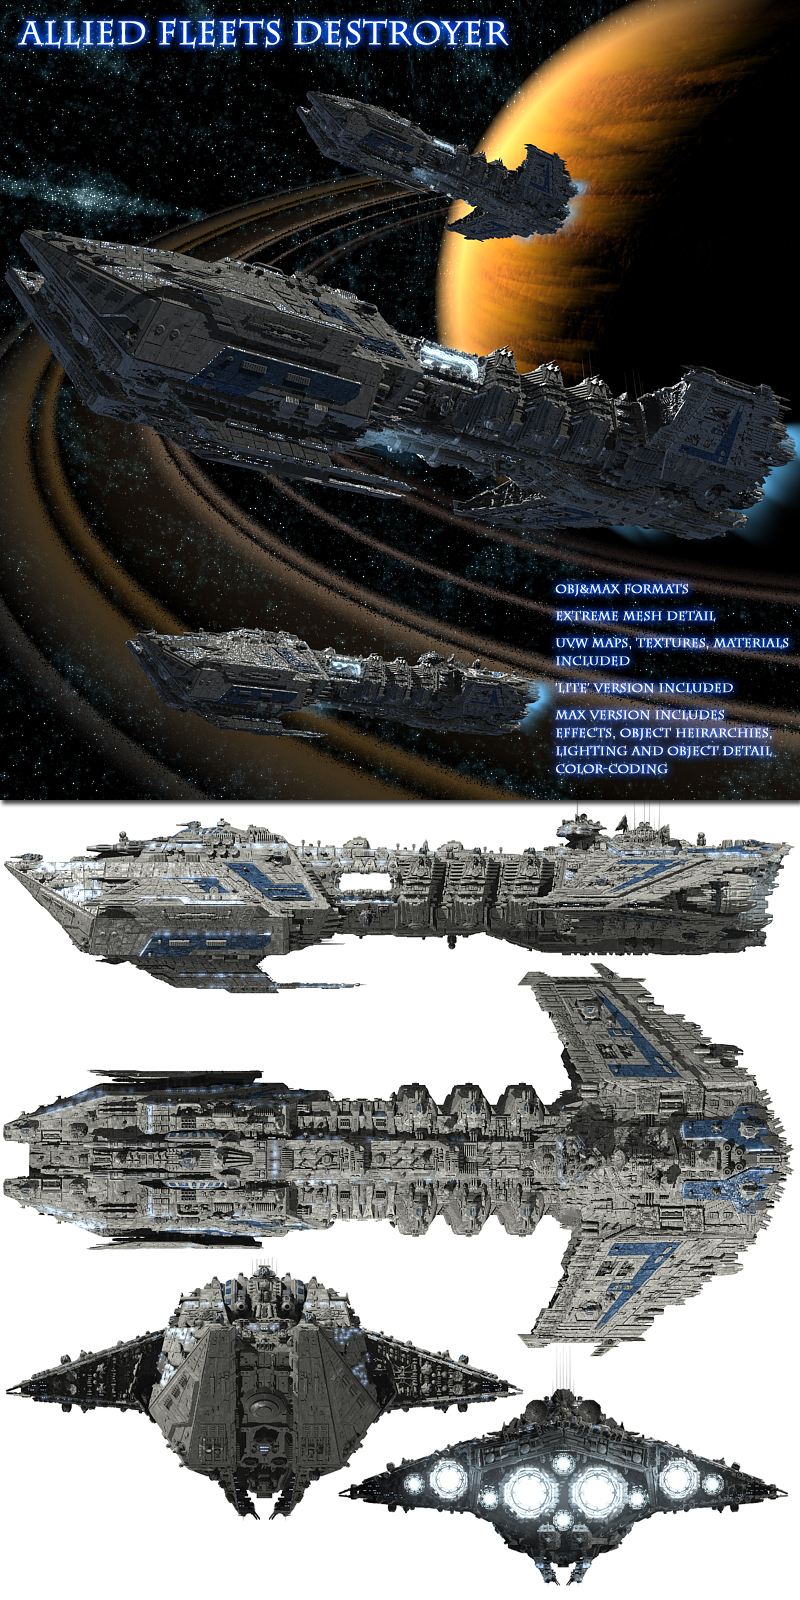 Allied Fleets Destroyer - Multi Format